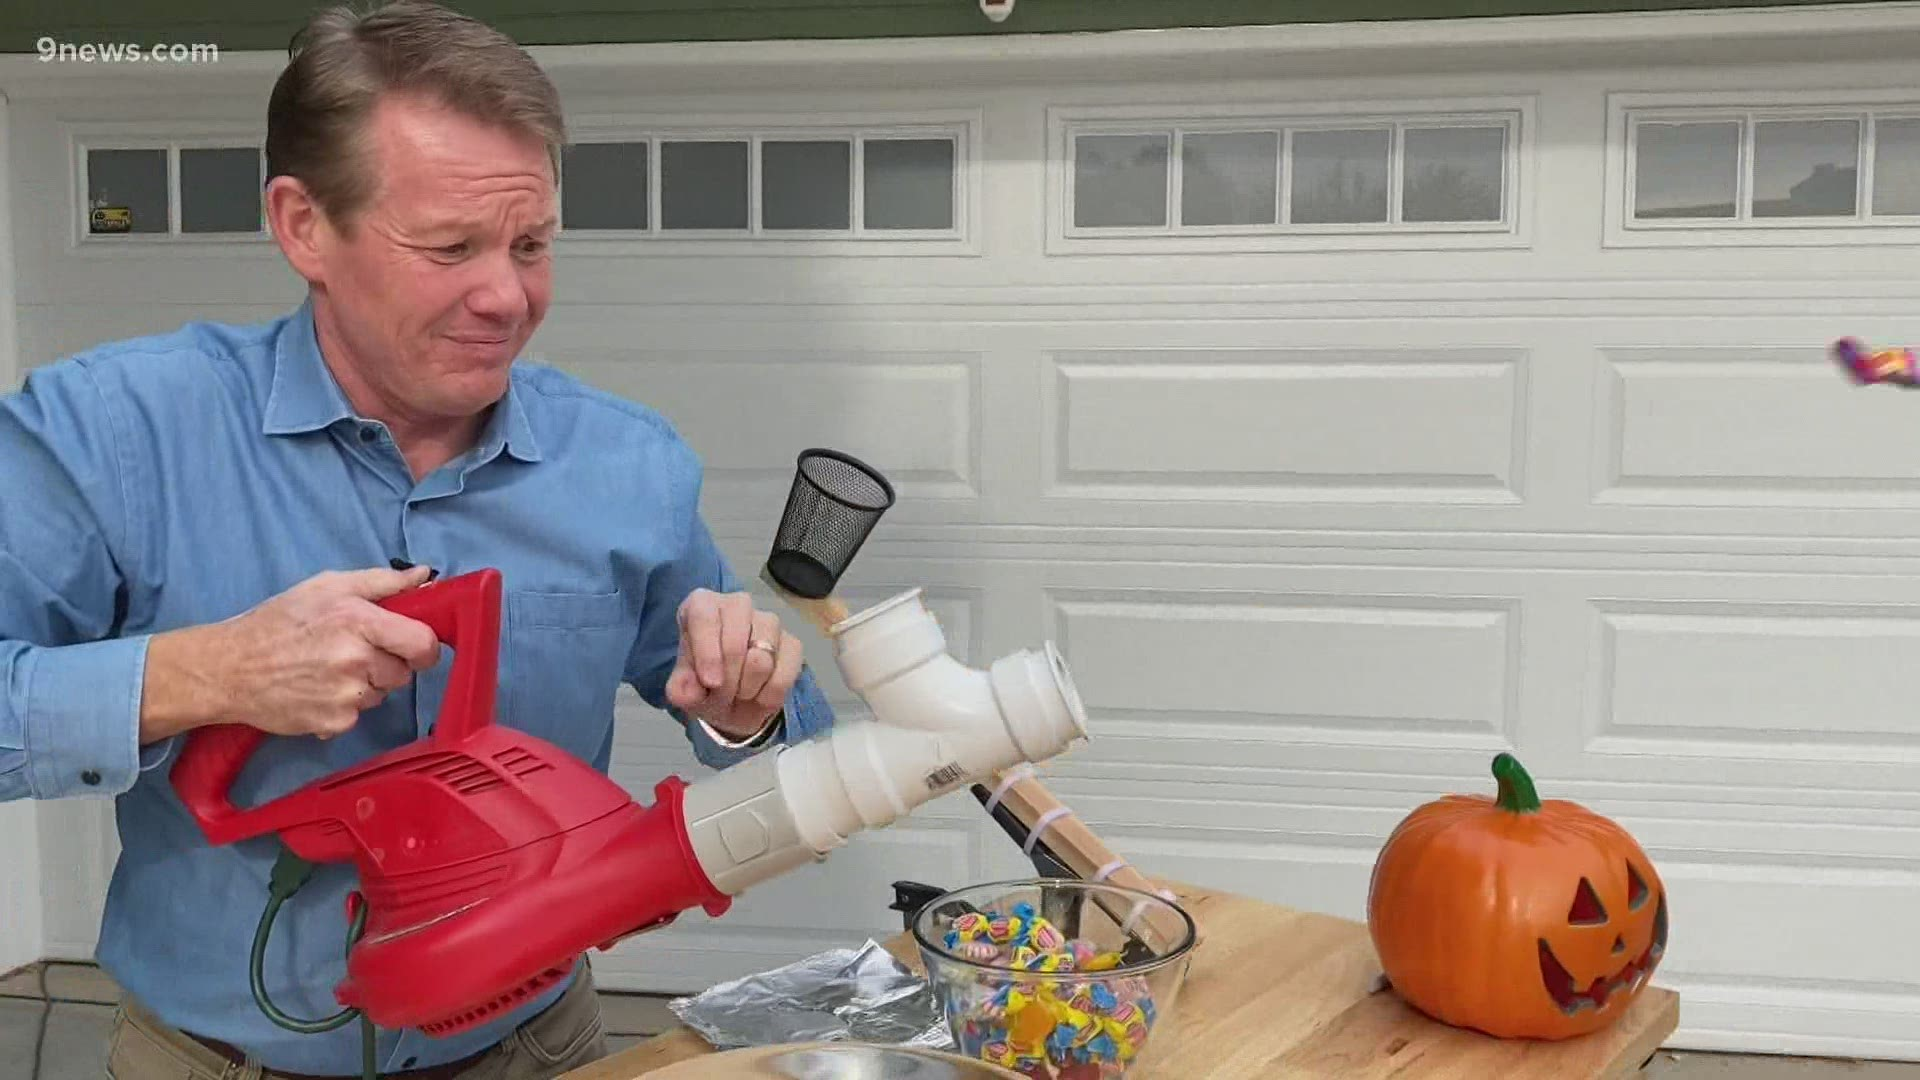 Halloween Candy Ideas.Ideas For Handing Out Halloween Candy While Social Distancing 9news Com